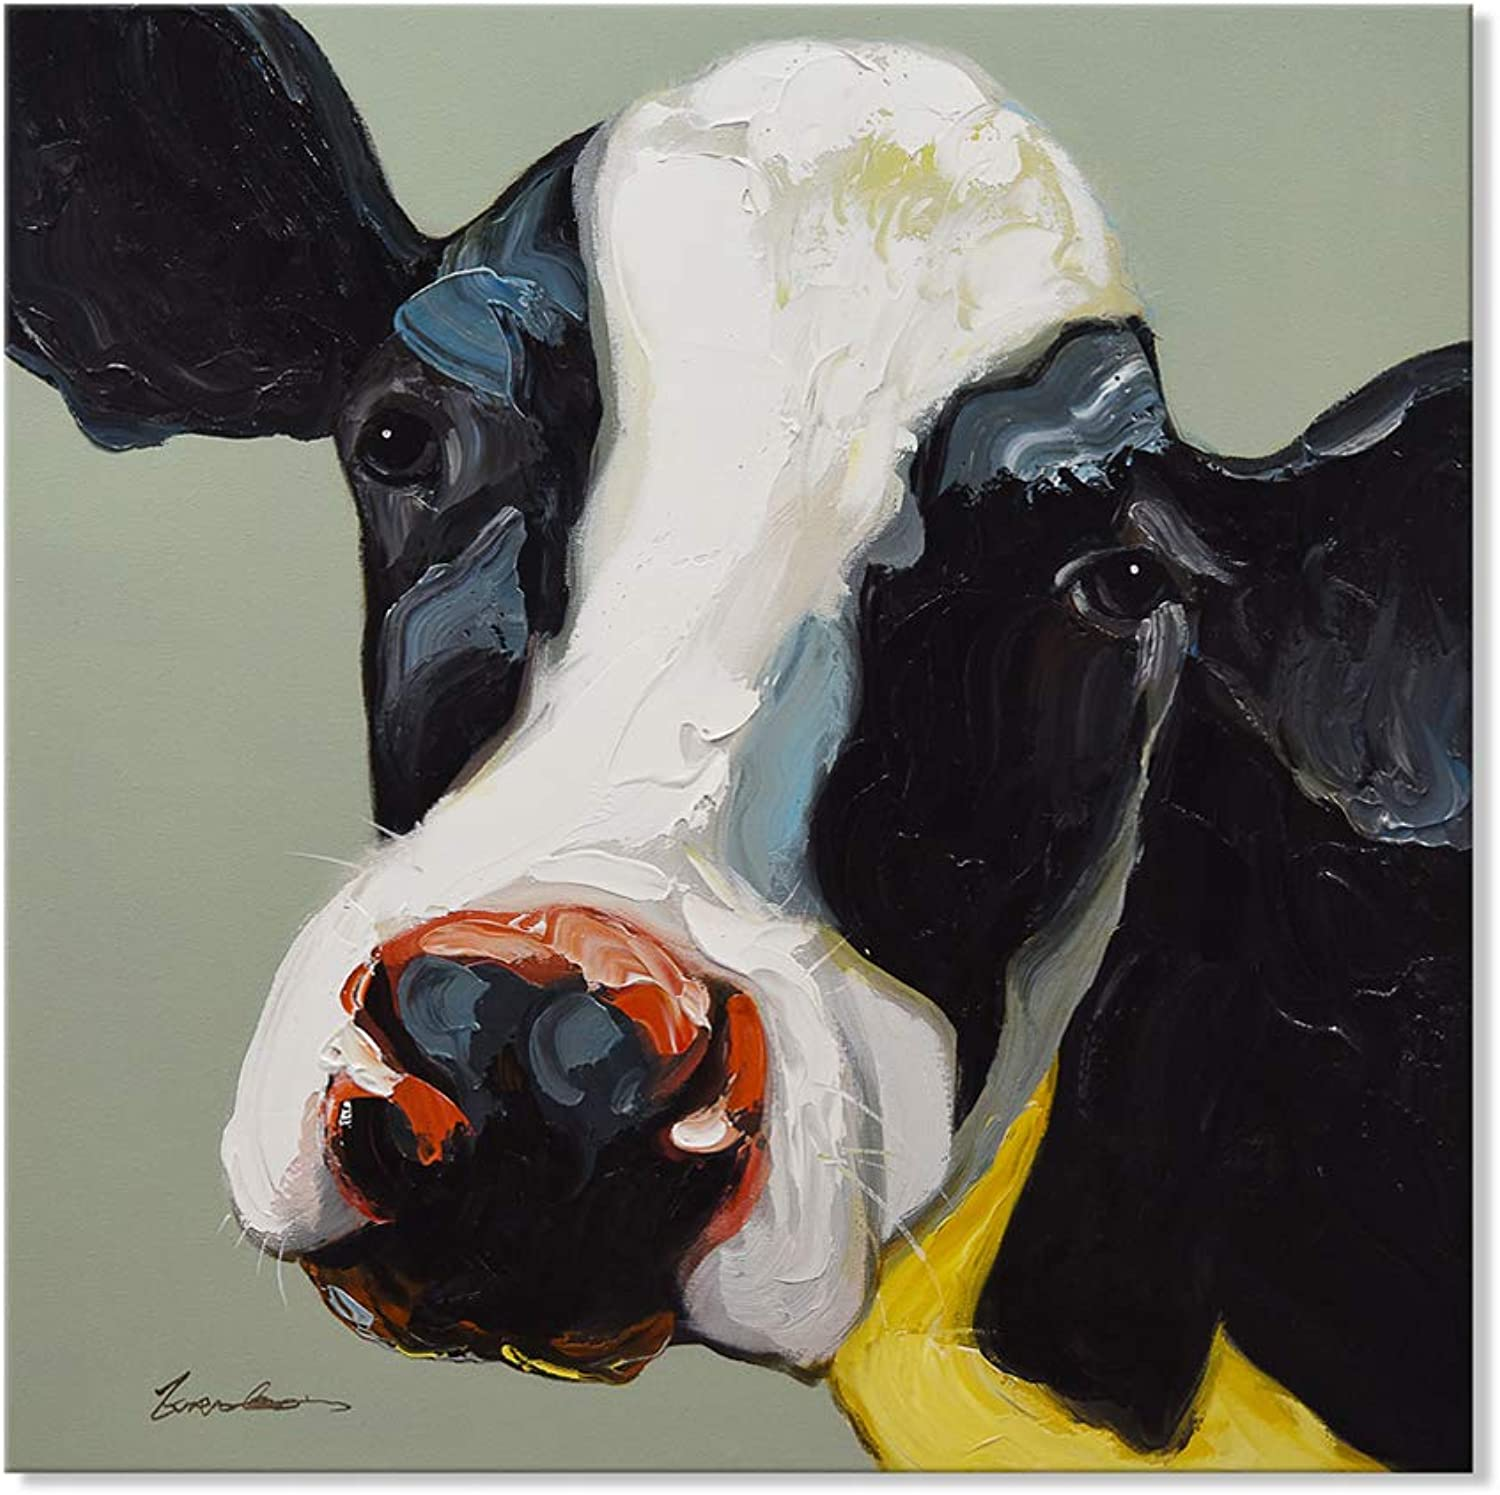 7CANVAS Cow Painting Stretched Canvas Art Animal Cattle Wall Picture Bull Wall Art Framed for Living Room Bedroom Kid Room Decor (Black Cow, 32x32 Inch)